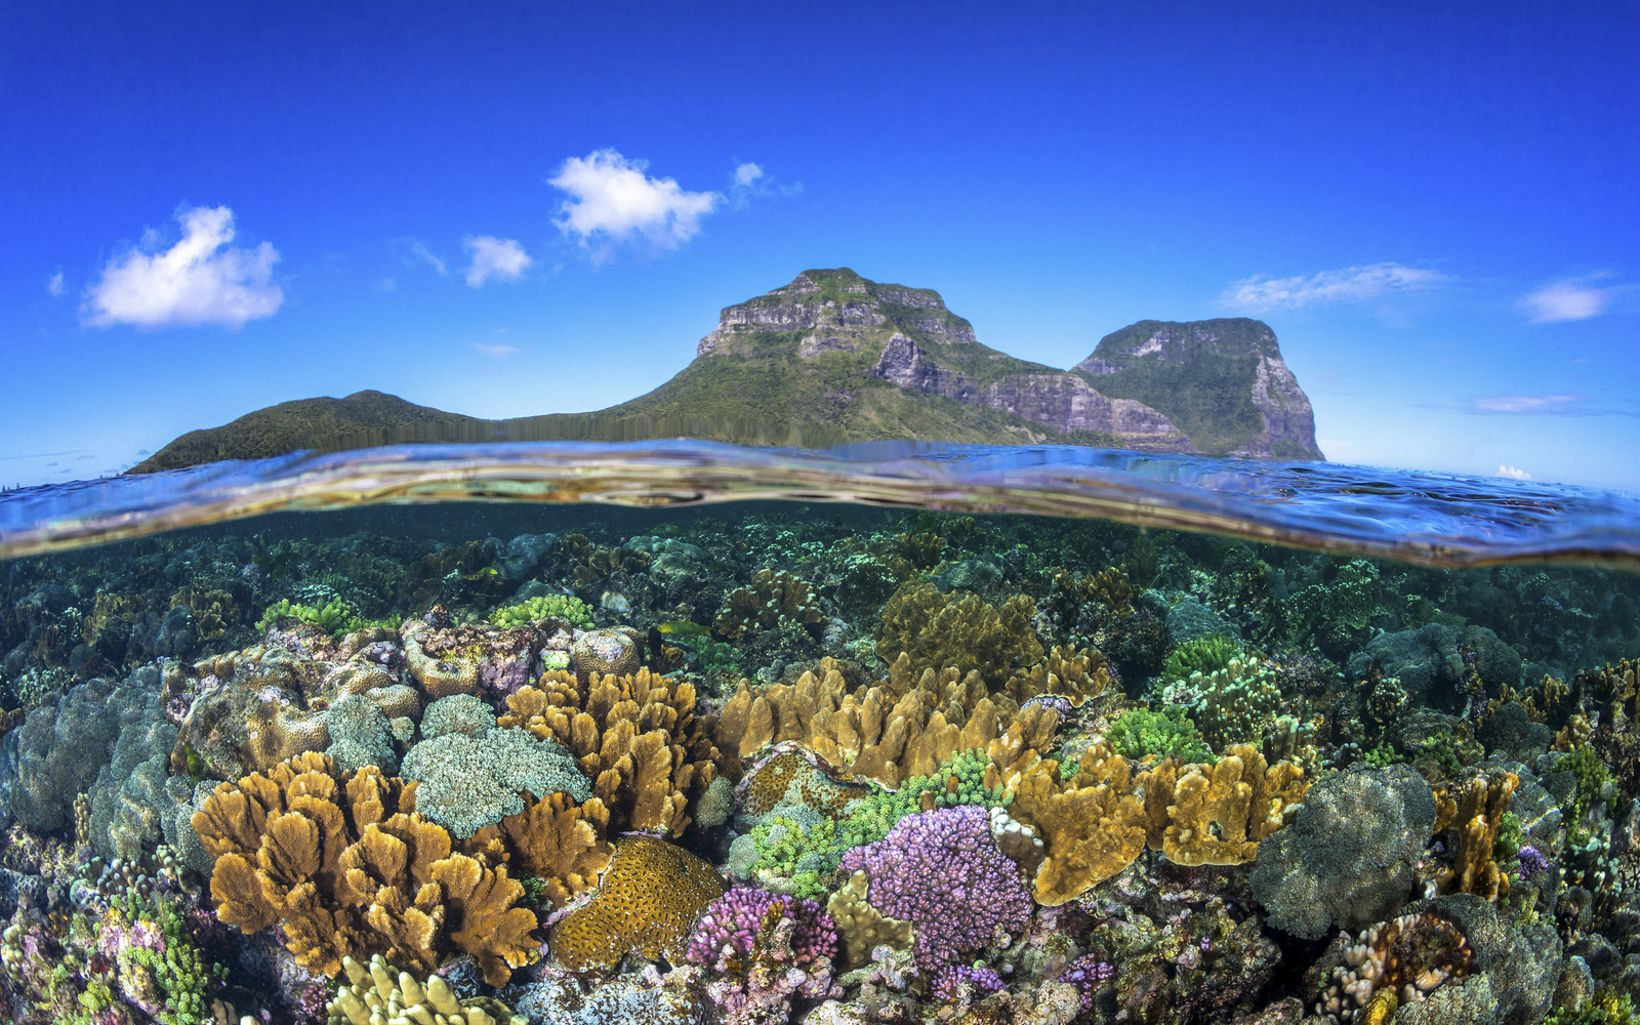 Healthy coral in the lagoon below Mount Gower and Mount Lidgbird on Lord Howe Island.